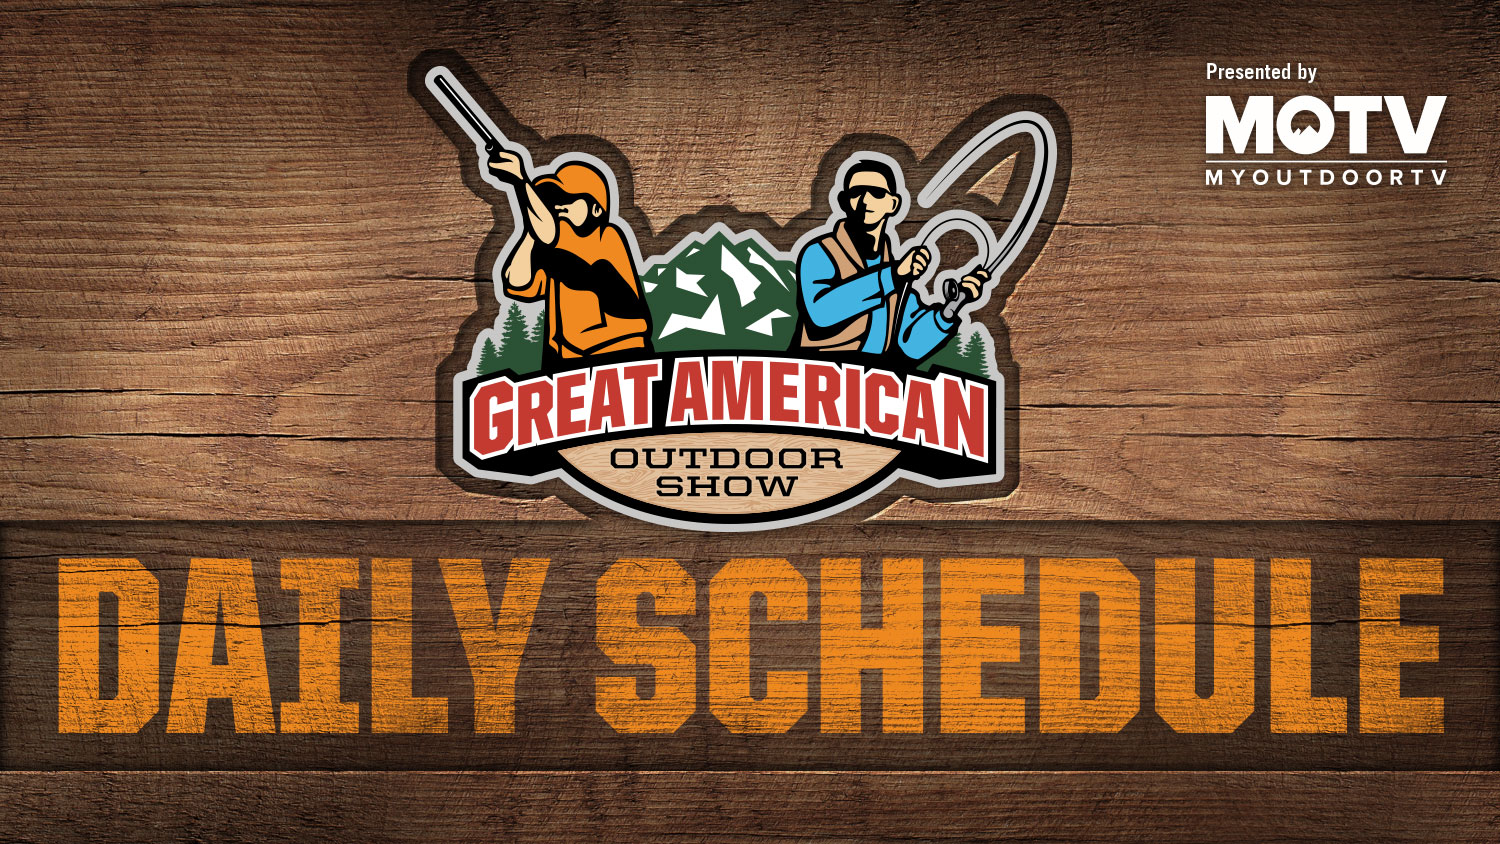 Great American Outdoor Show: Day 1 Schedule